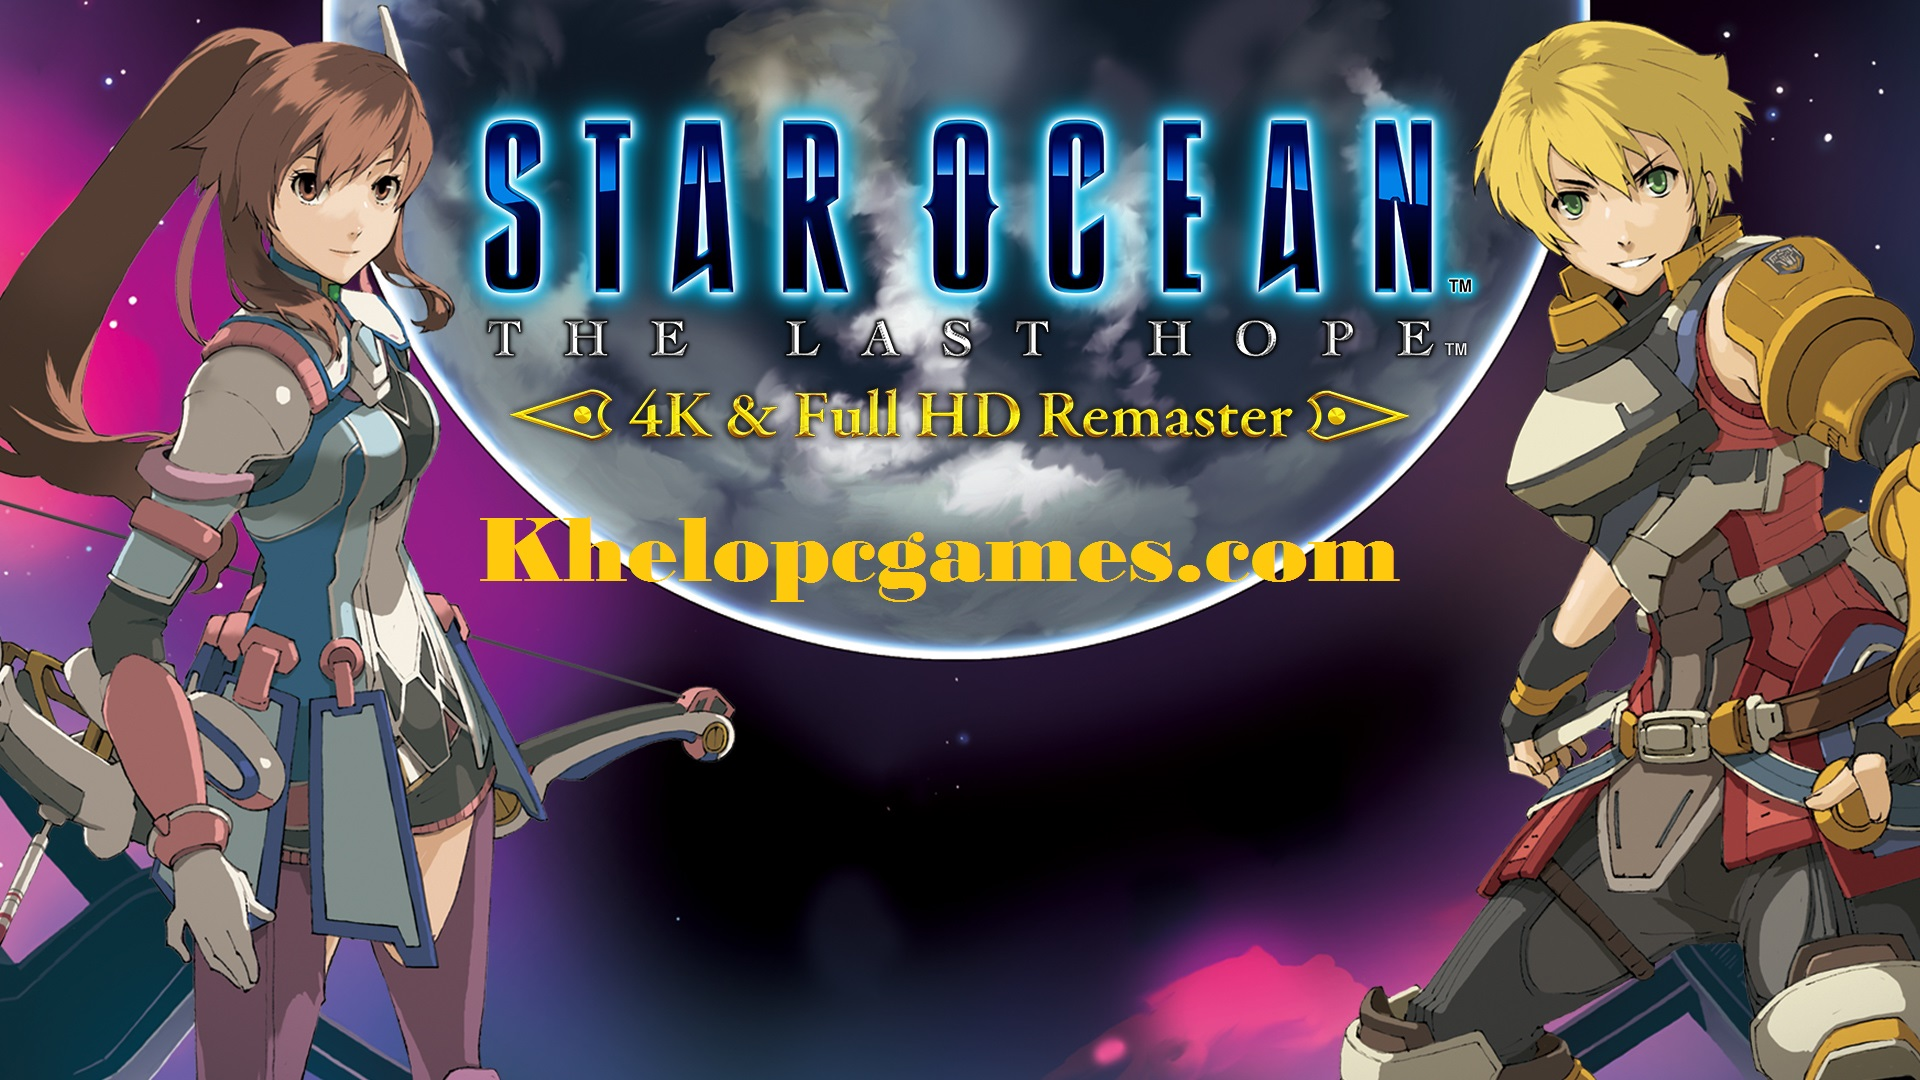 STAR OCEAN THE LAST HOPE 4K & Full HD Remaster Free Download Full Version PC Games Setup